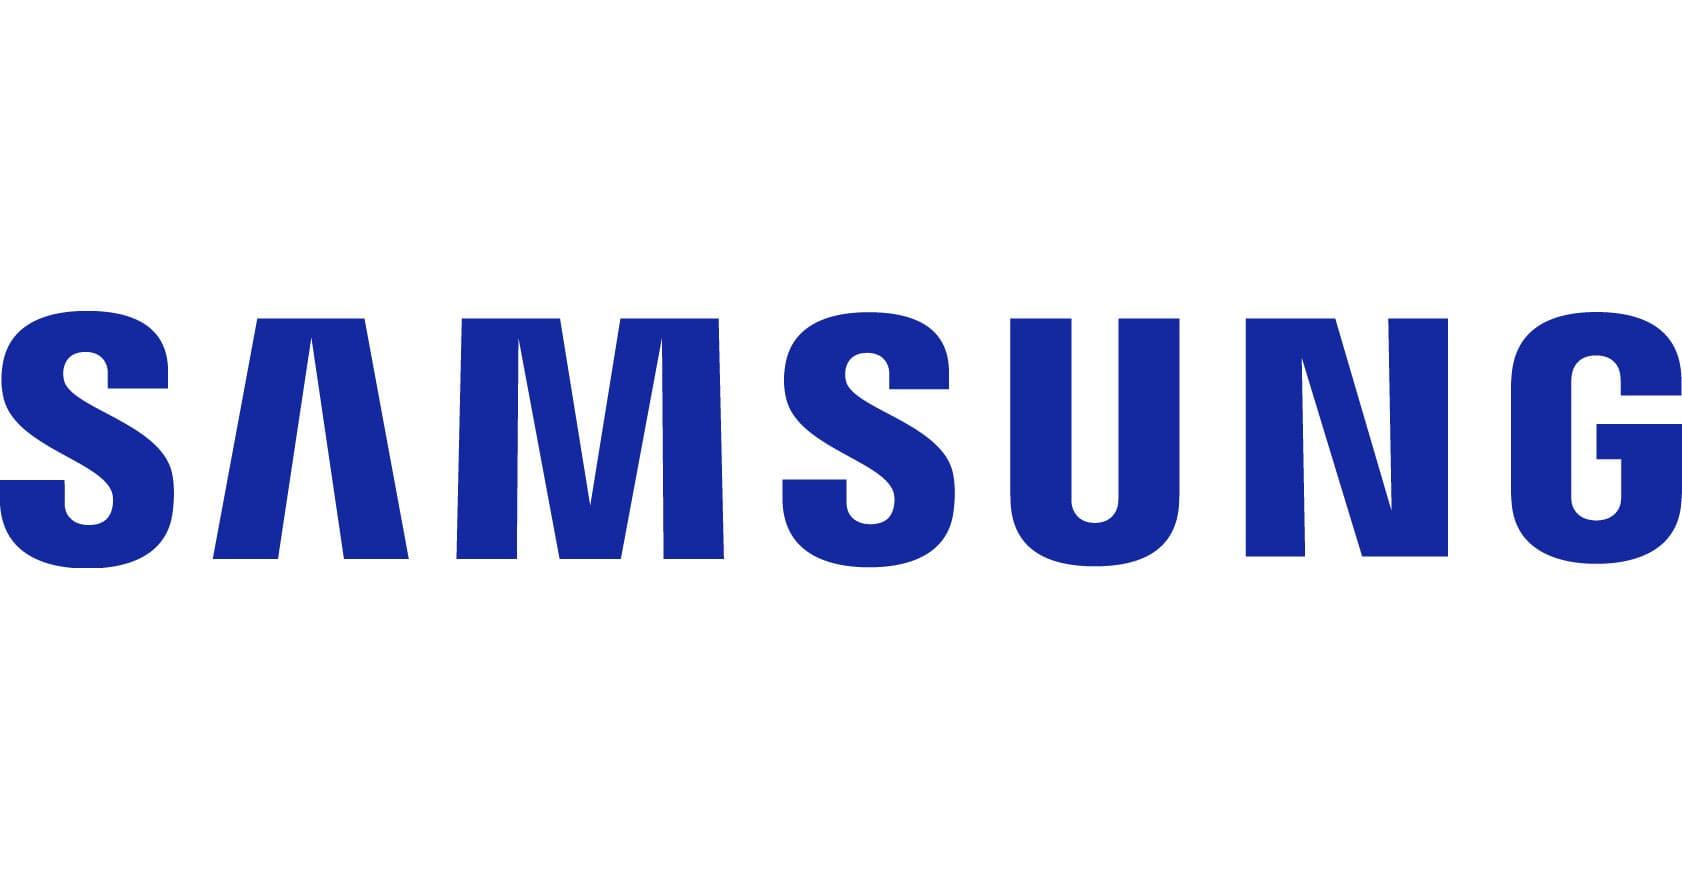 Samsung Galaxy Note Logo - Samsung Galaxy Tablets: Mobile & Computer Tablets | Samsung US